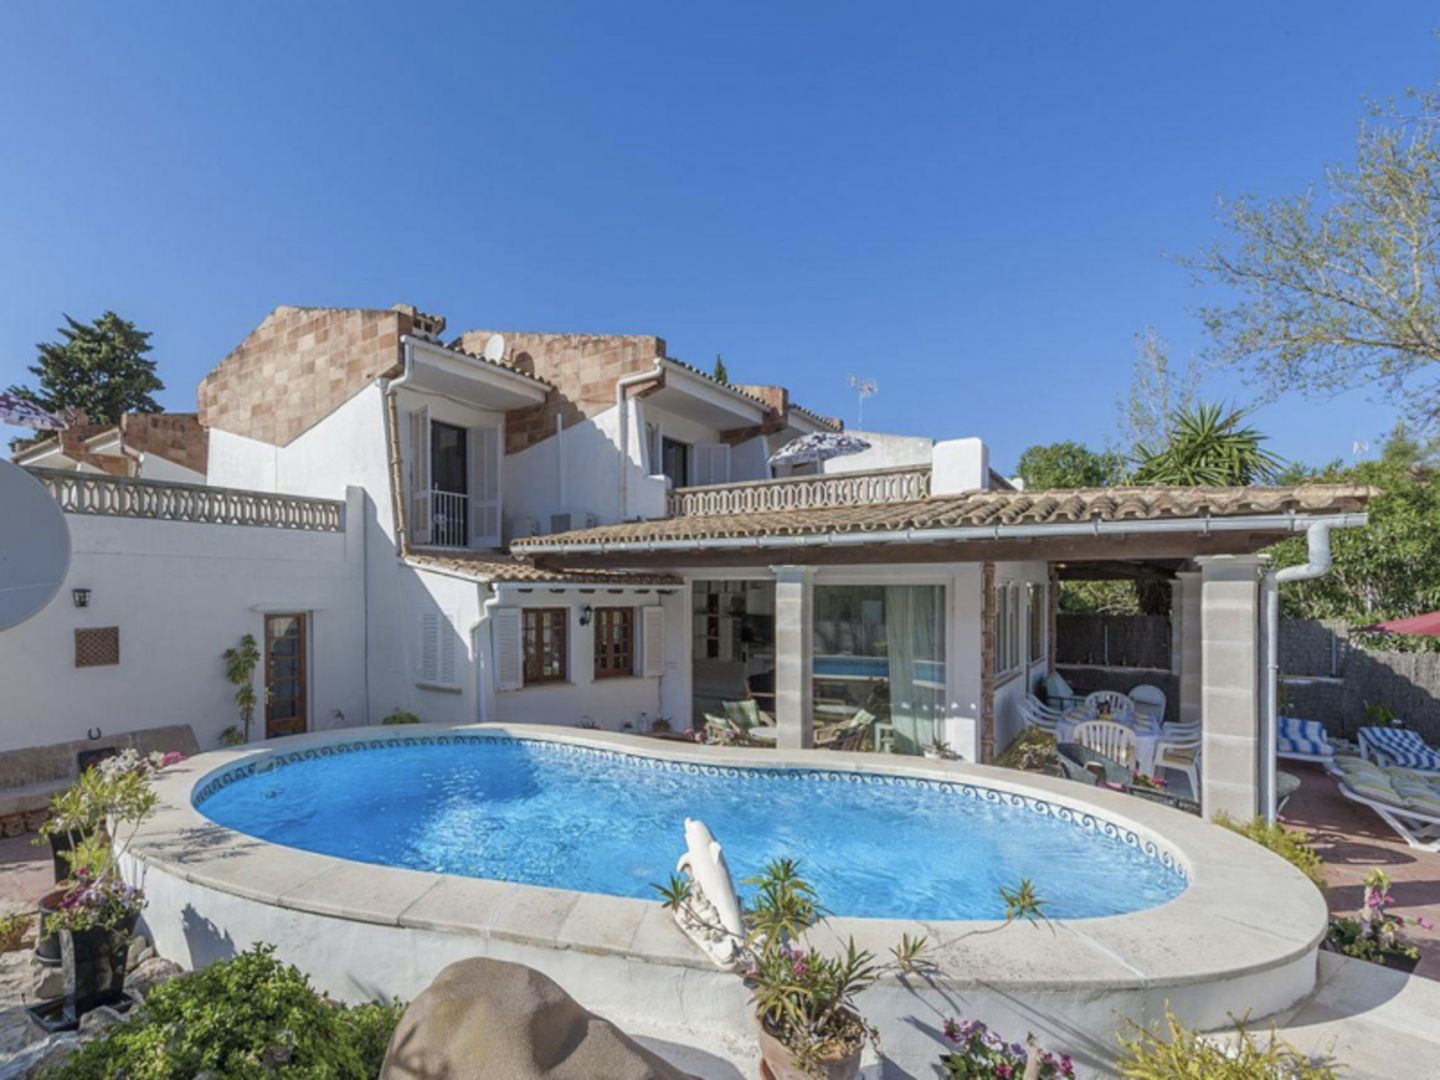 4 Bed Villa for sale in PUERTO POLLENSA 0